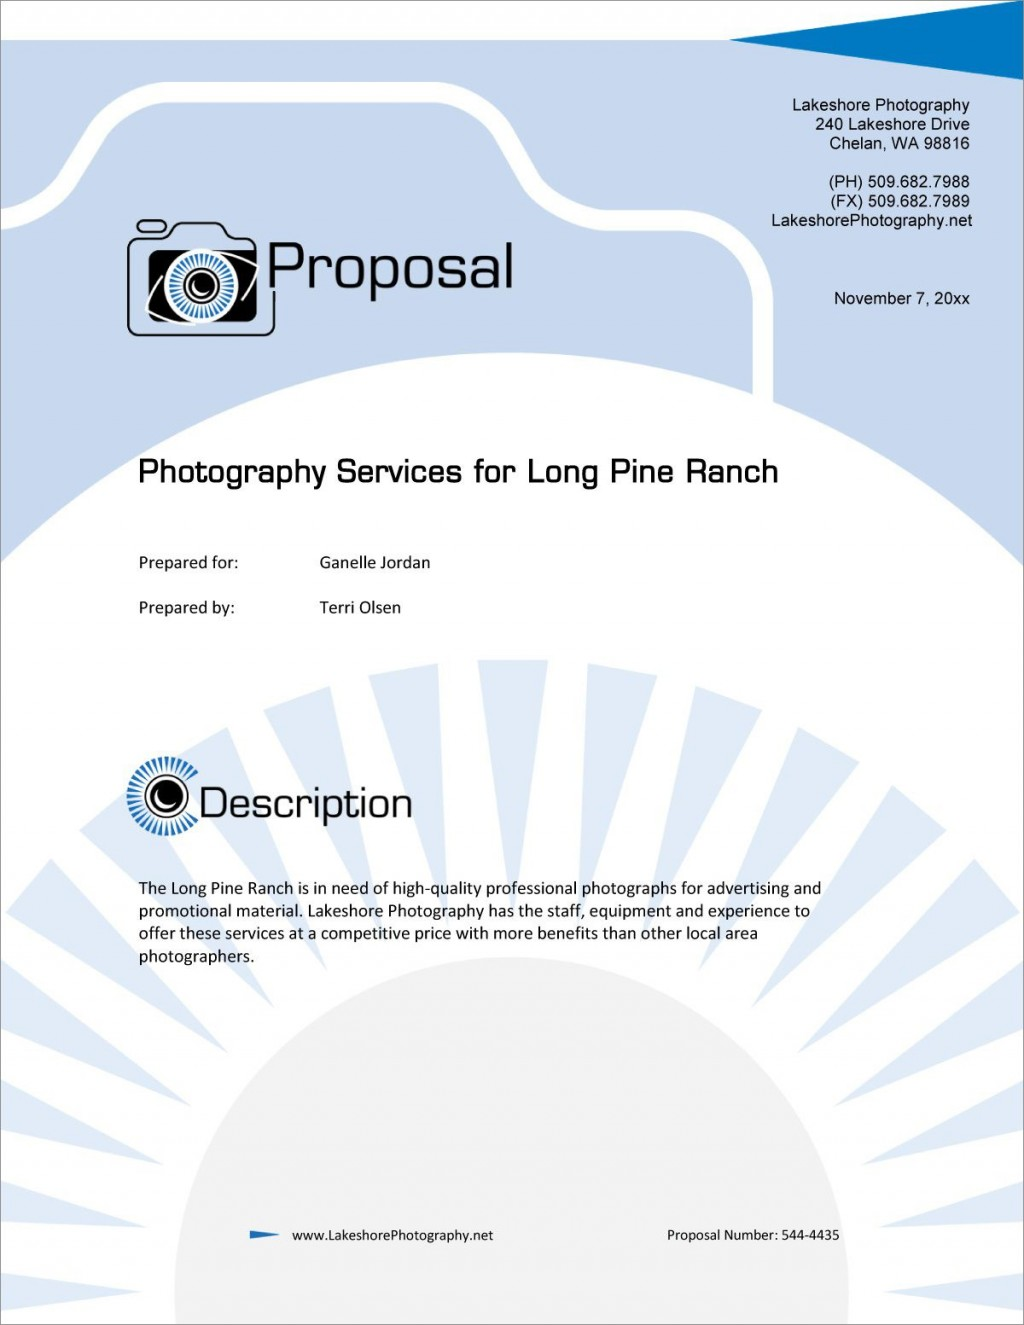 002 Exceptional Wedding Photography Busines Plan Example Image  Of SampleLarge